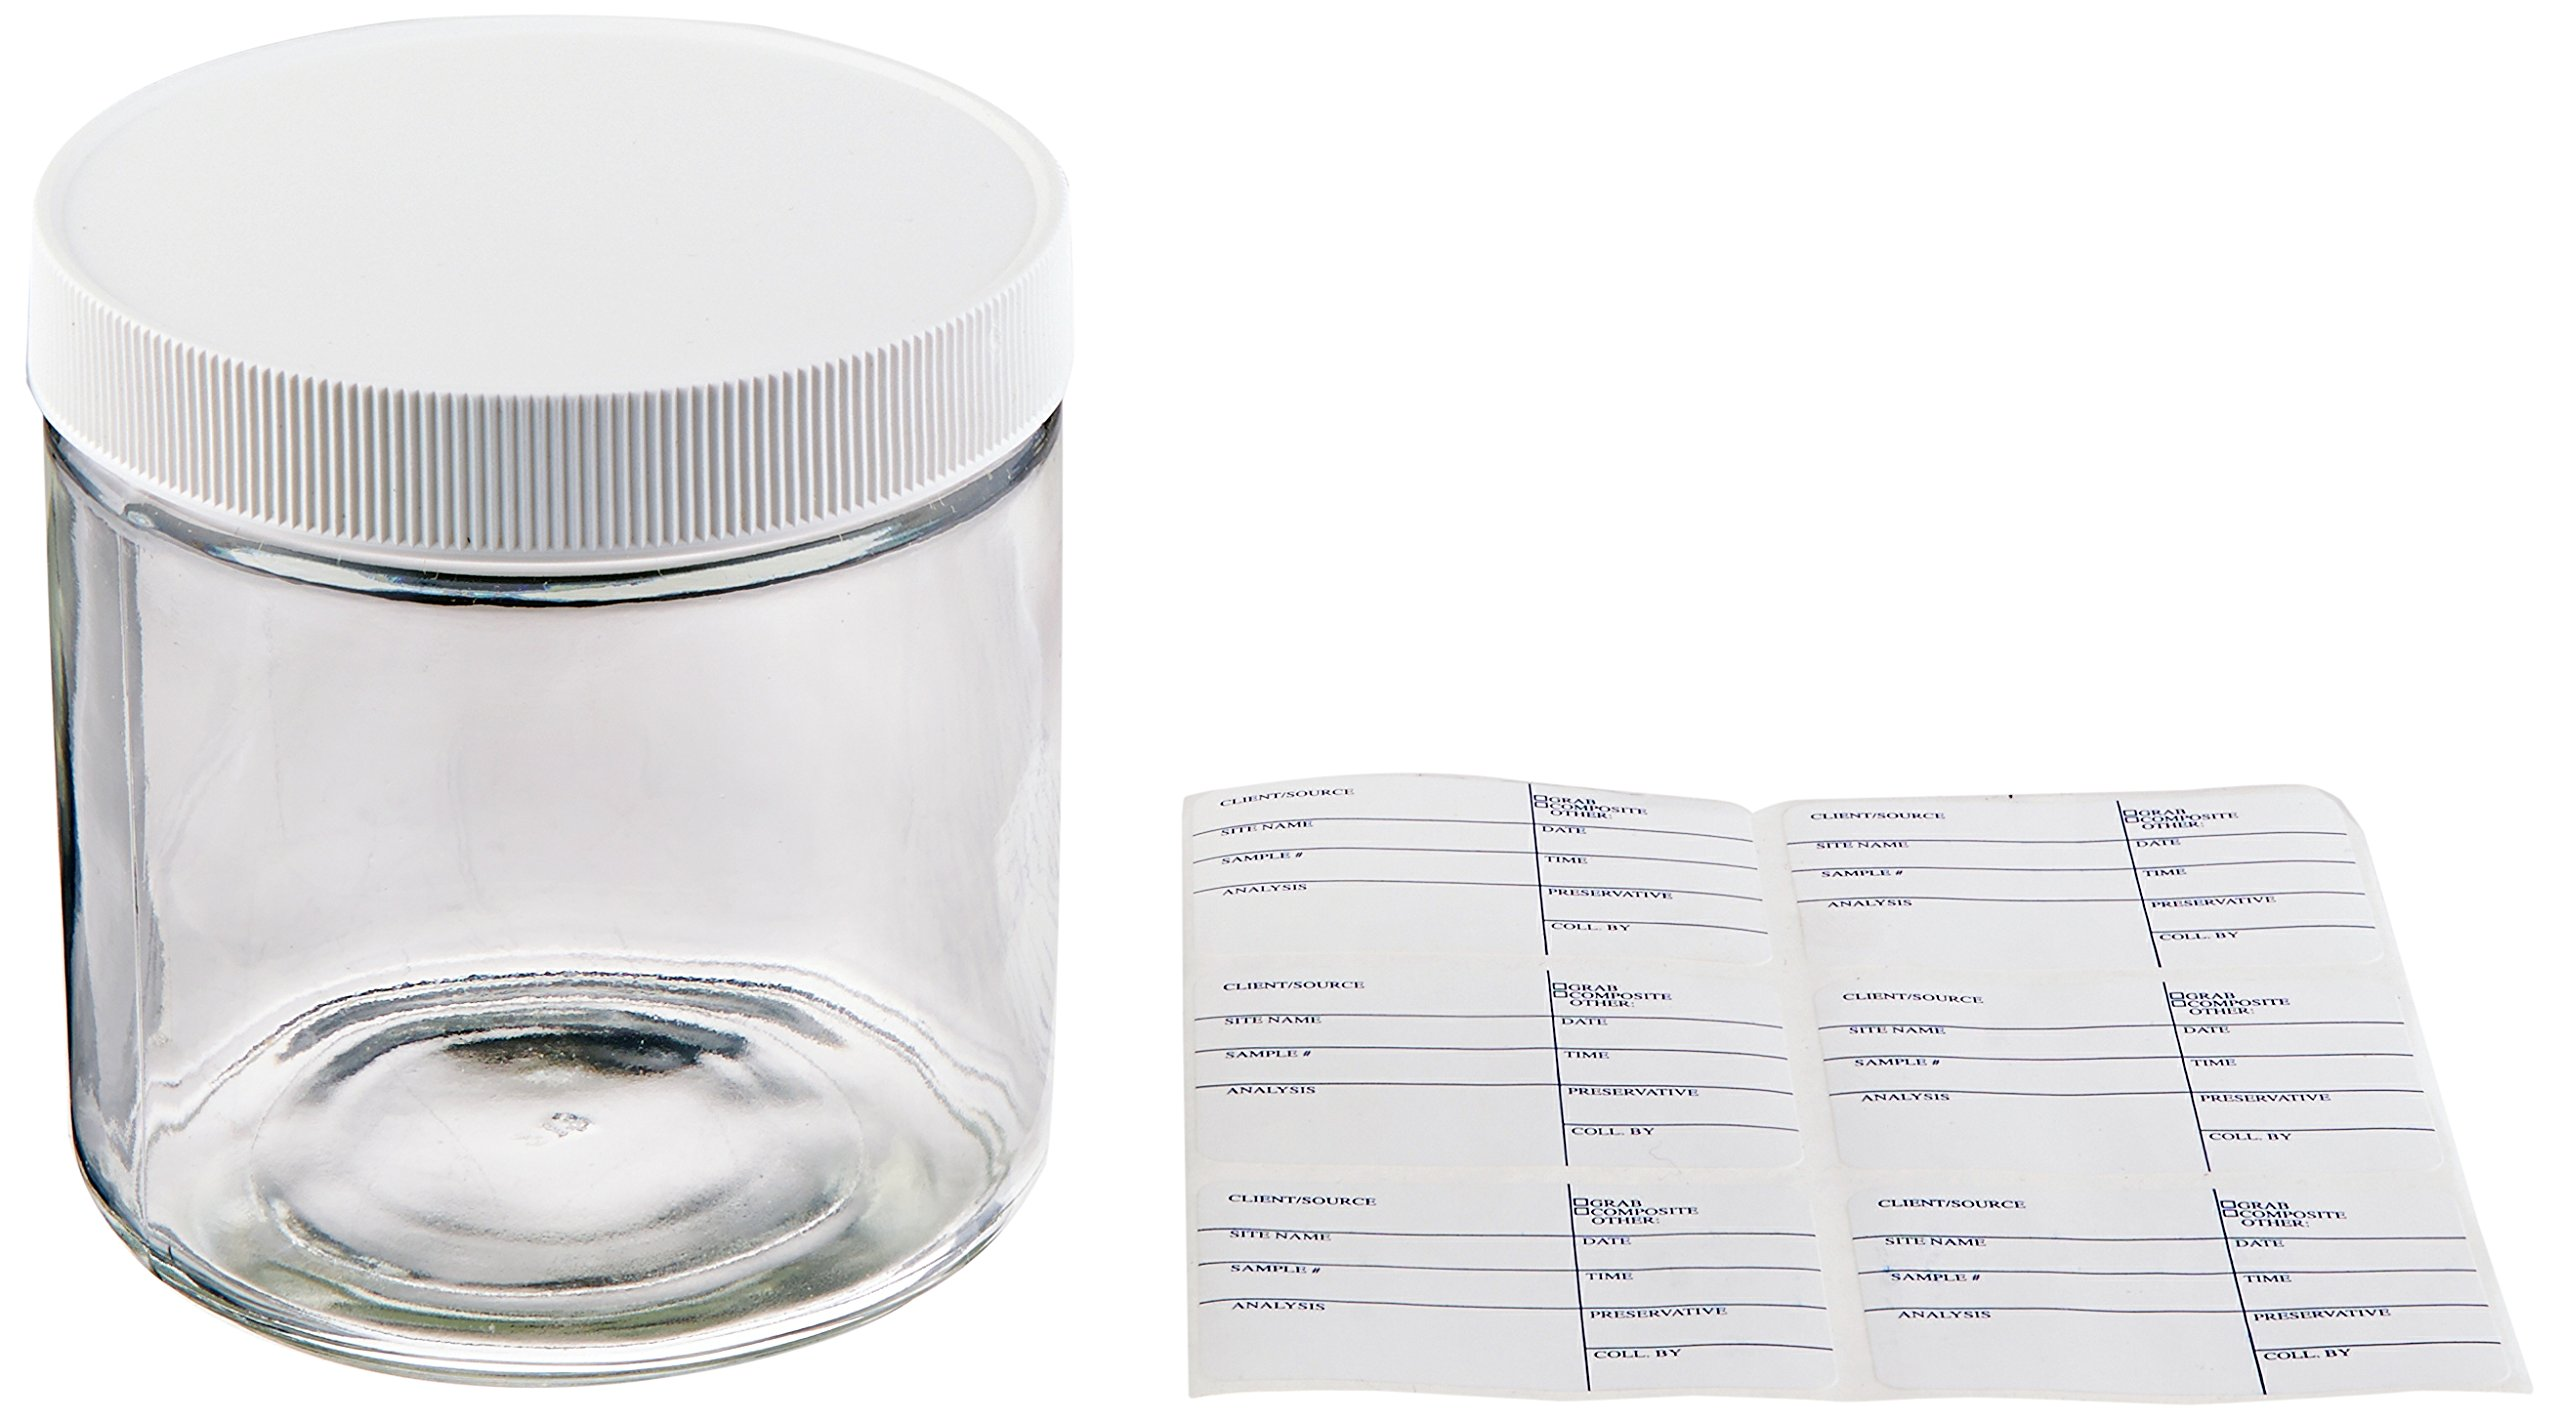 JG Finneran D0084-16 Clear Borosilicate Glass Short Straight Sided Standard Wide Mouth Jar with White Polypropylene Closure, Unlined, 89-400mm Cap Size, 16oz Capacity (Pack of 12)